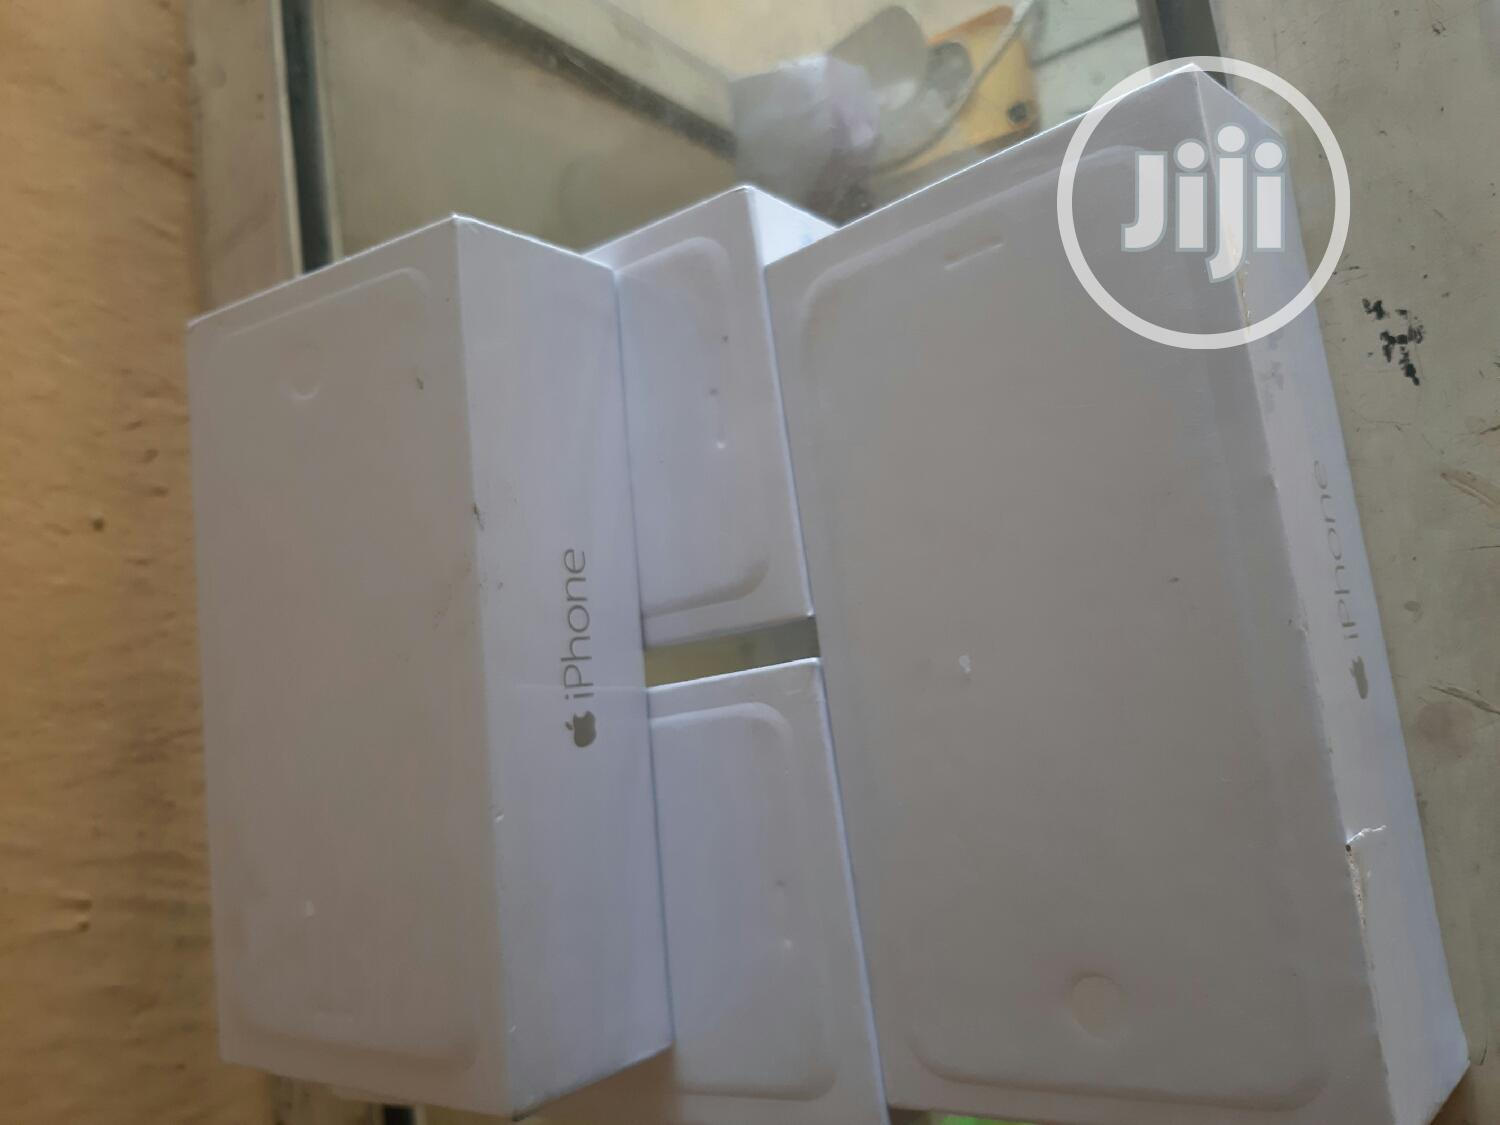 New Apple iPhone 6 Plus 16 GB Gold   Mobile Phones for sale in Ibadan, Oyo State, Nigeria